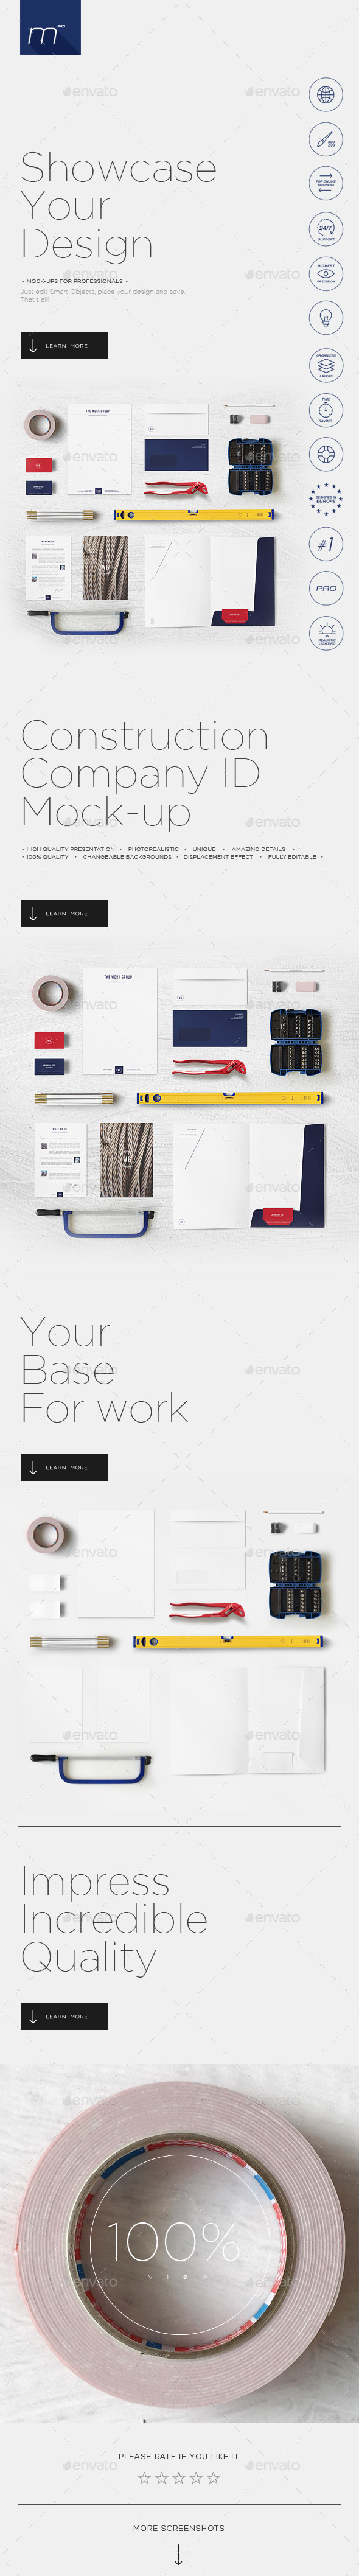 GraphicRiver Construction Company Identity Mock-up 11541186